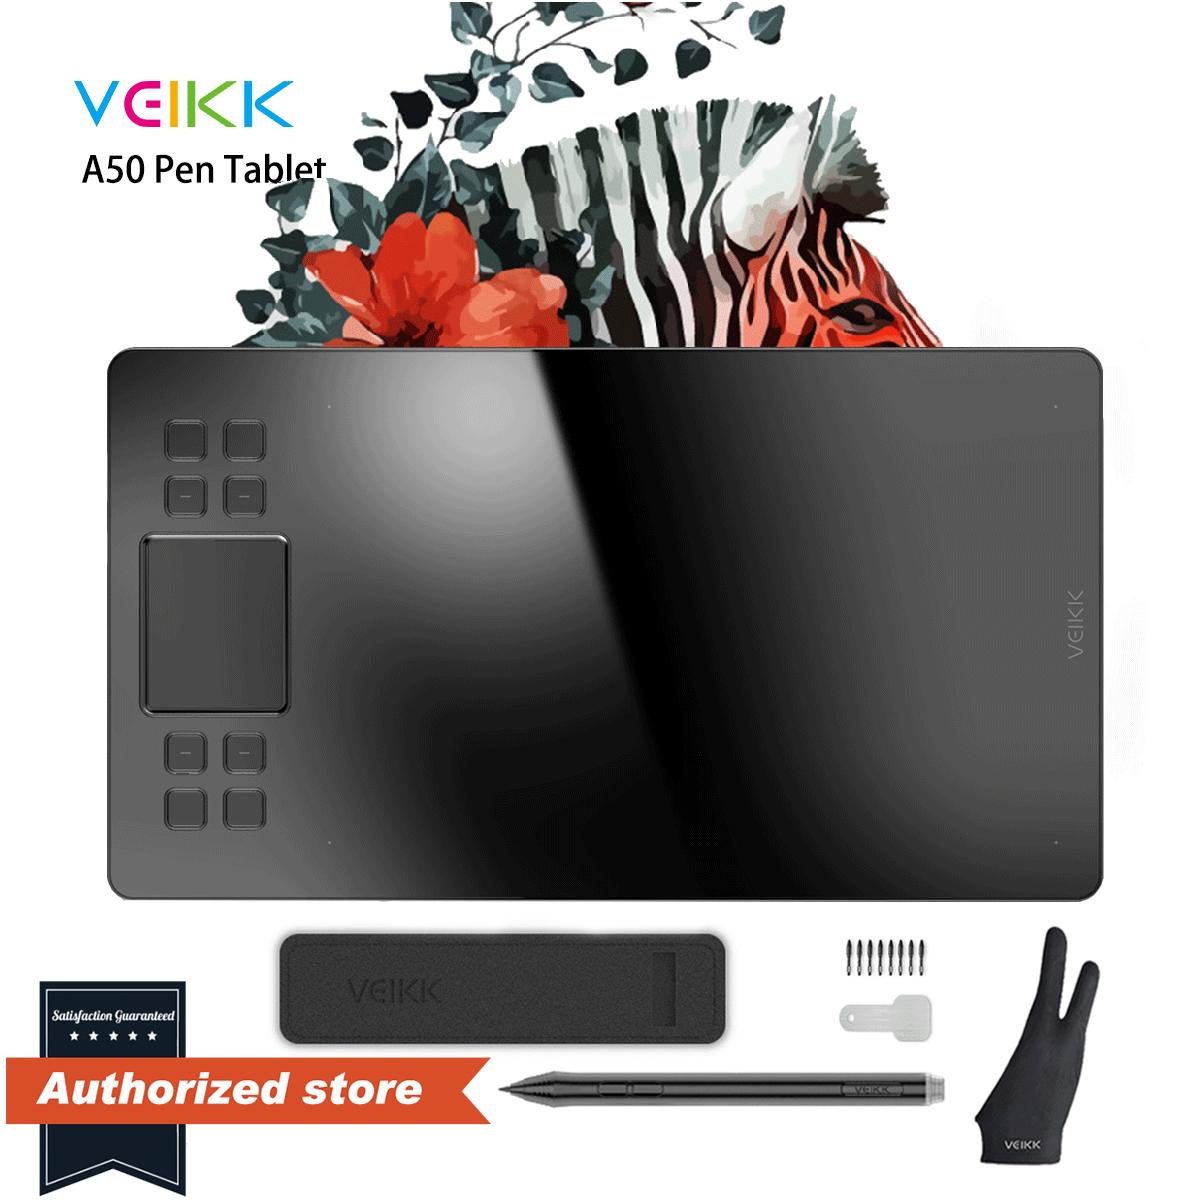 Veikk Official Store Veikk A50 Graphics Drawing Tablet Full Panel Digital Drawing Pad 10 X 6 Inch Large Work Area With 8192 Pressure Sensitivity